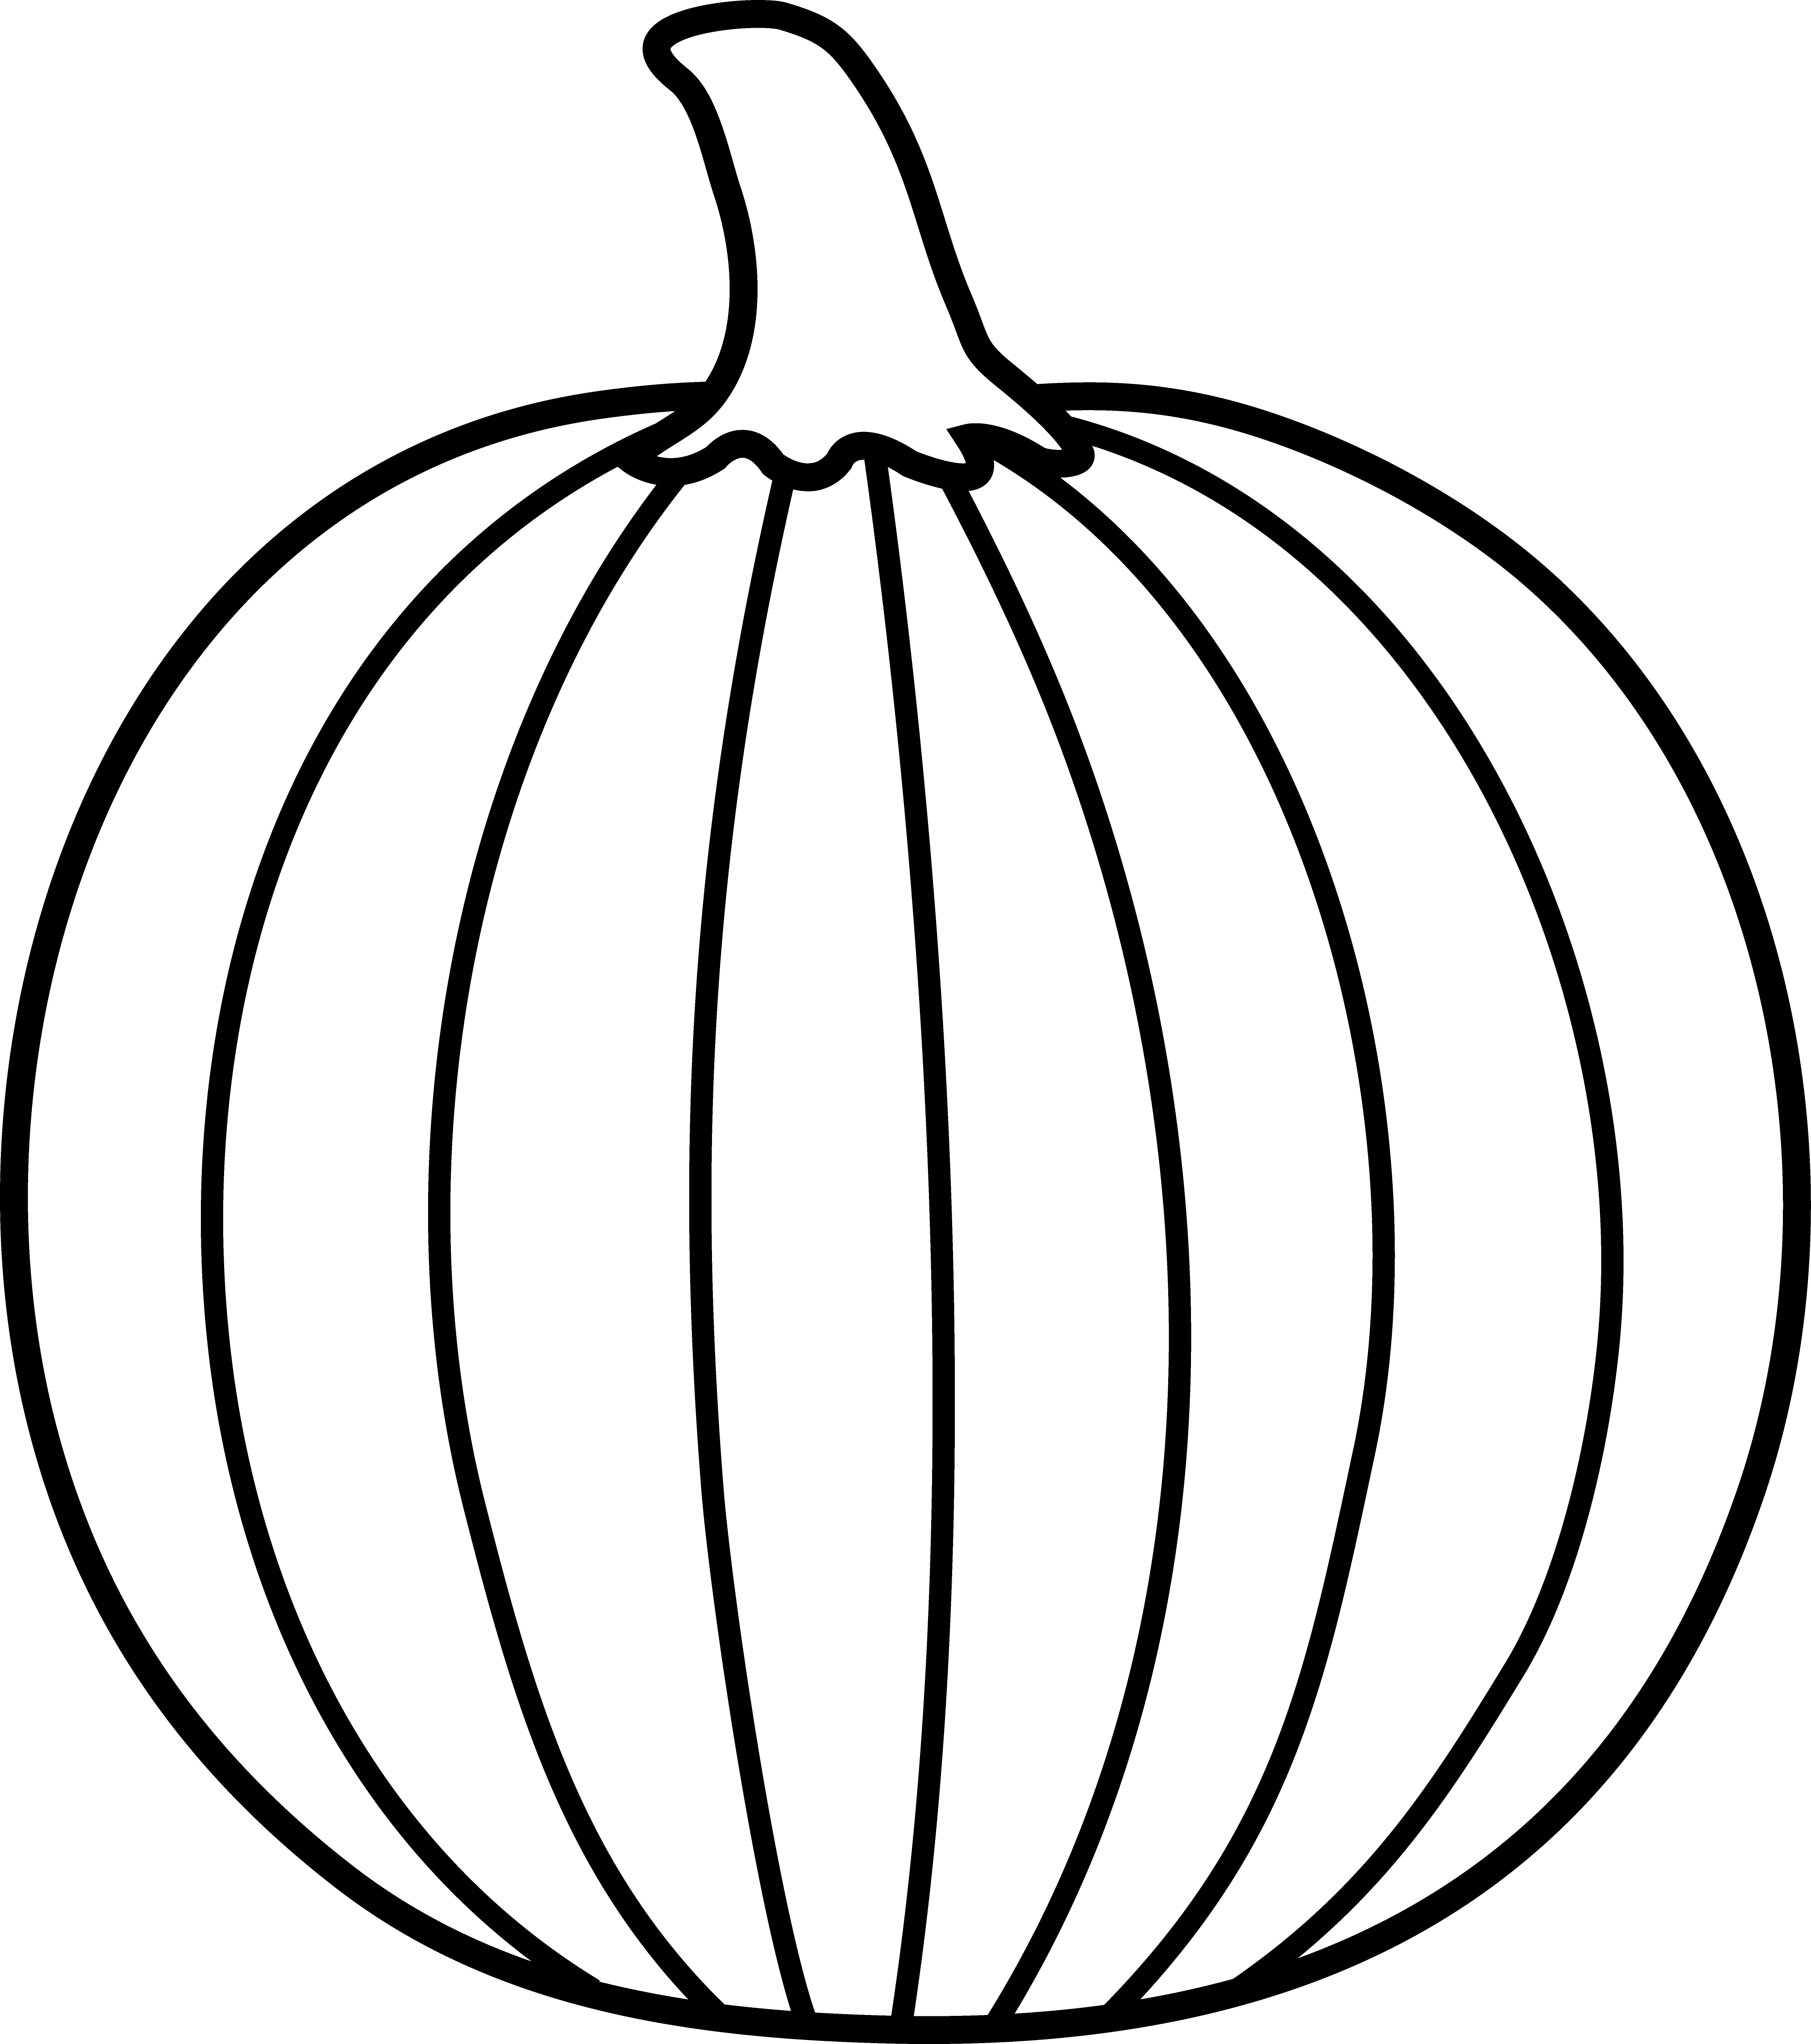 Clipart black and white pumpkin graphic stock Pumpkin Outline Printable | Clipart Panda - Free Clipart Images ... graphic stock